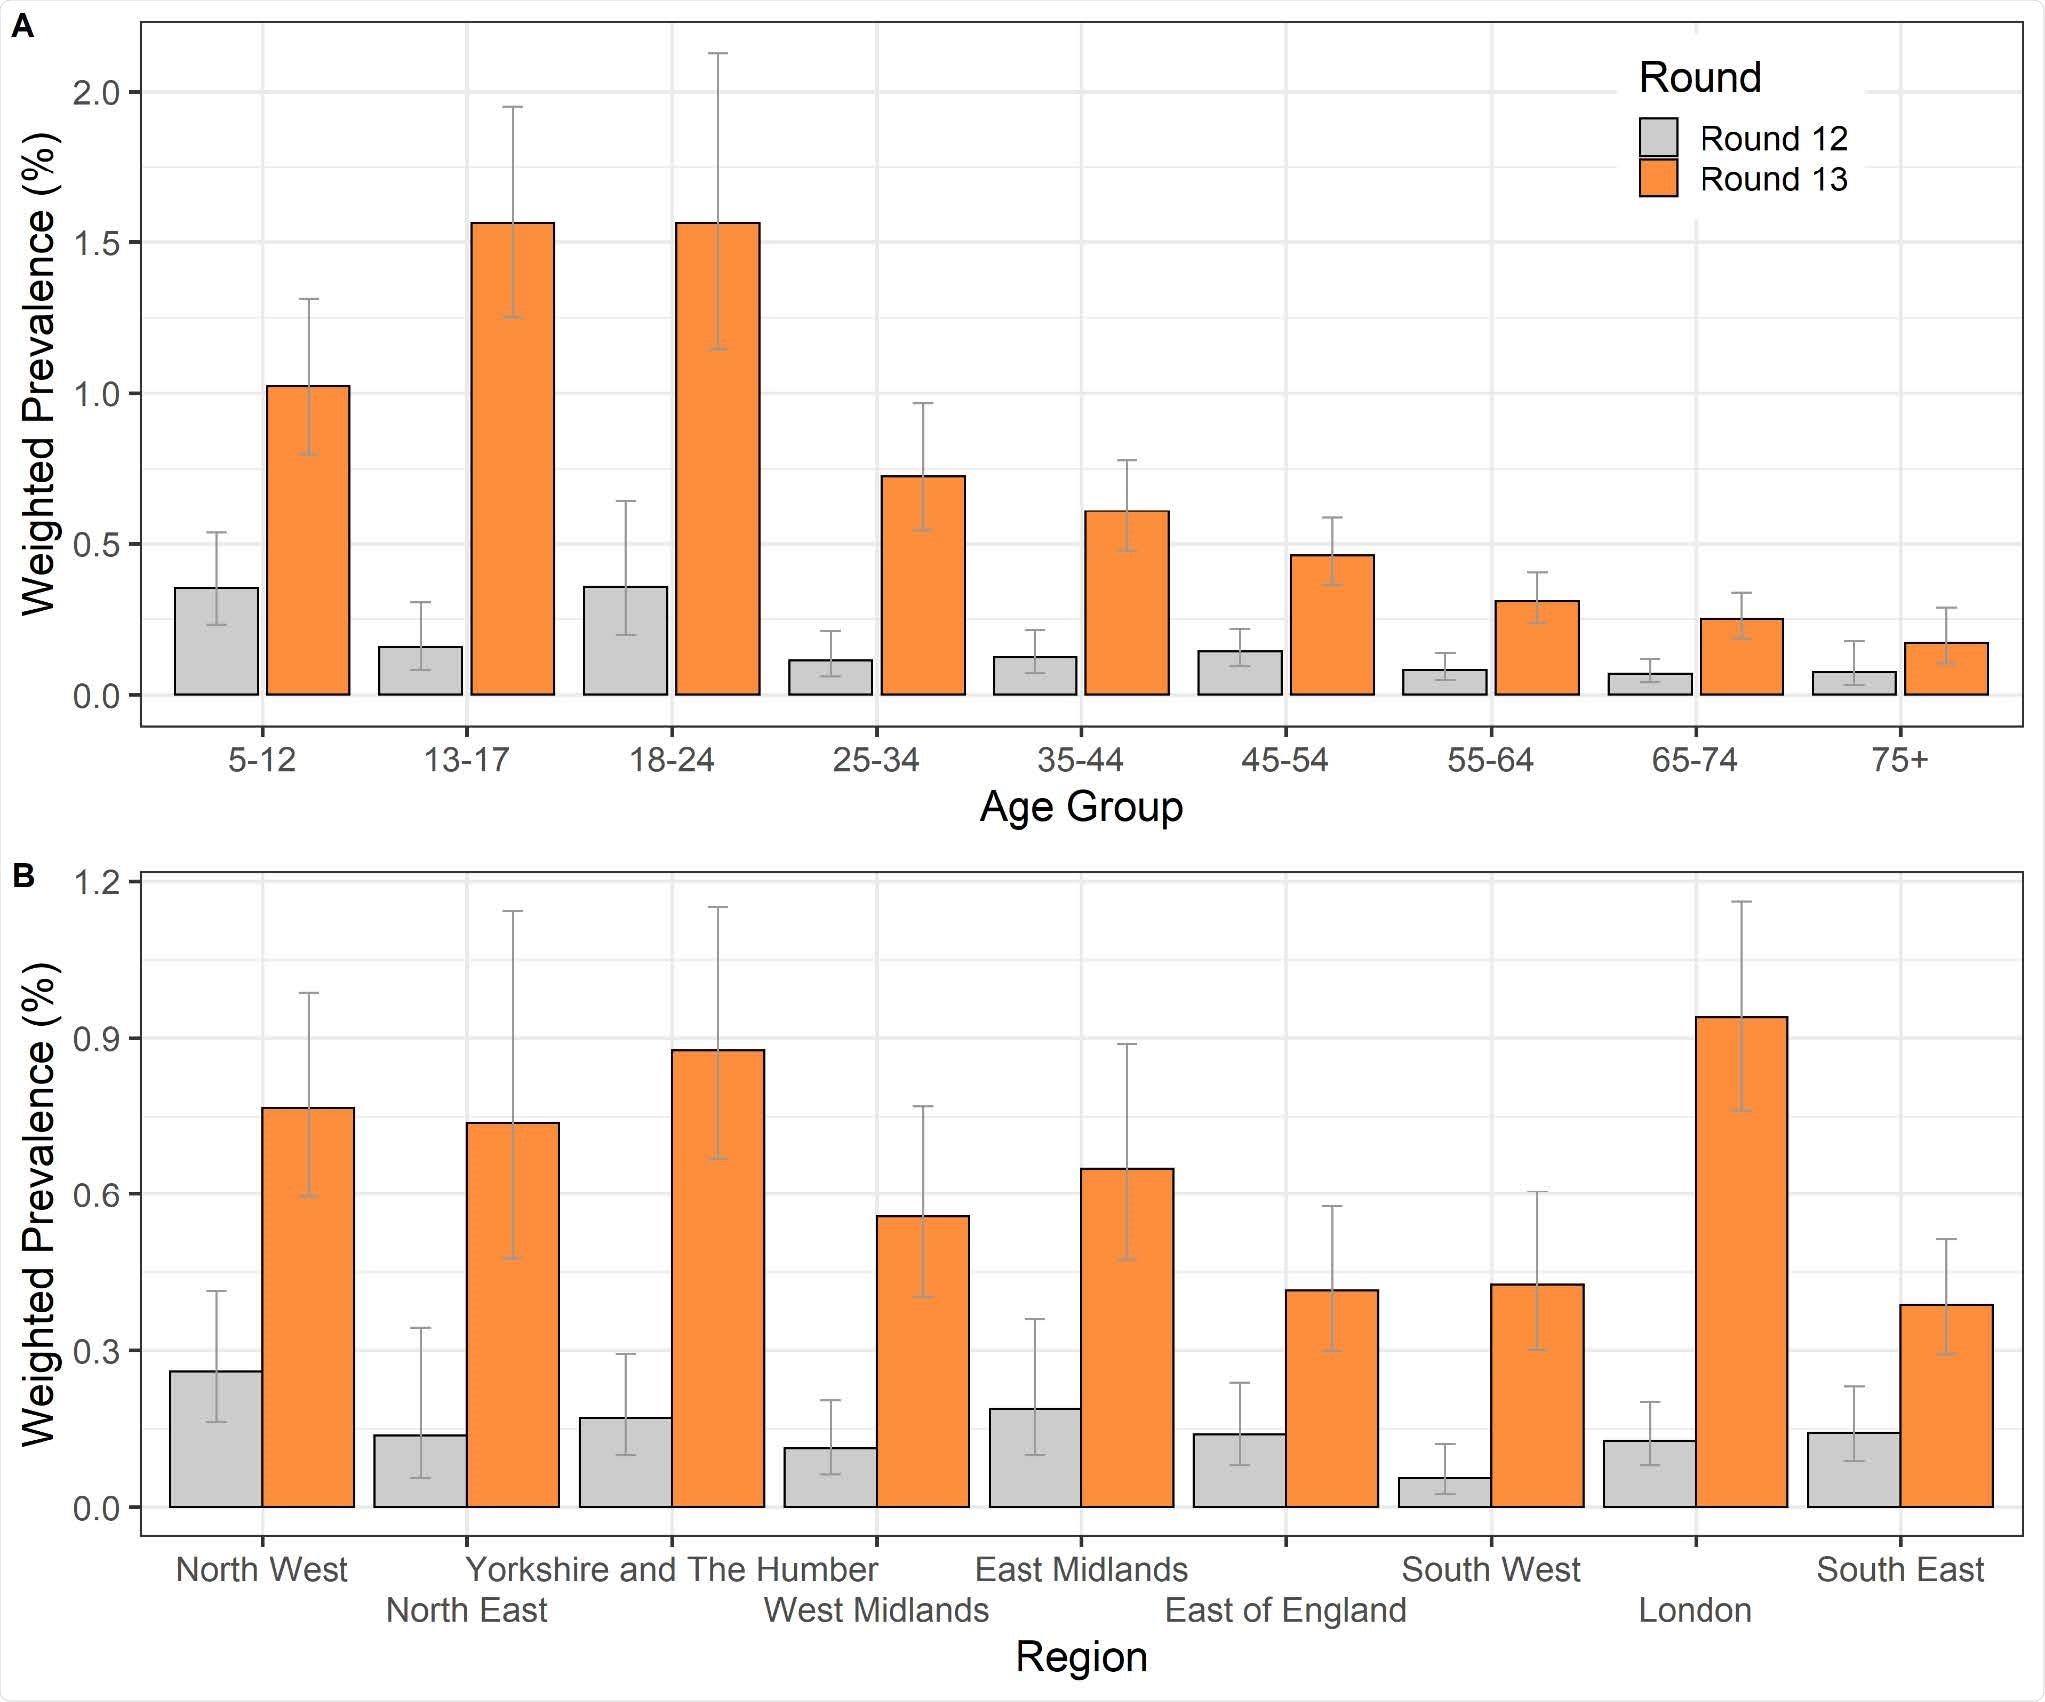 Weighted prevalence of swab-positivity by age group and by region for round 12 and round 13 complete. Bars show 95% confidence intervals. (A) Weighted prevalence of swab-positivity by age group. (B) Weighted prevalence of swab-positivity by region.